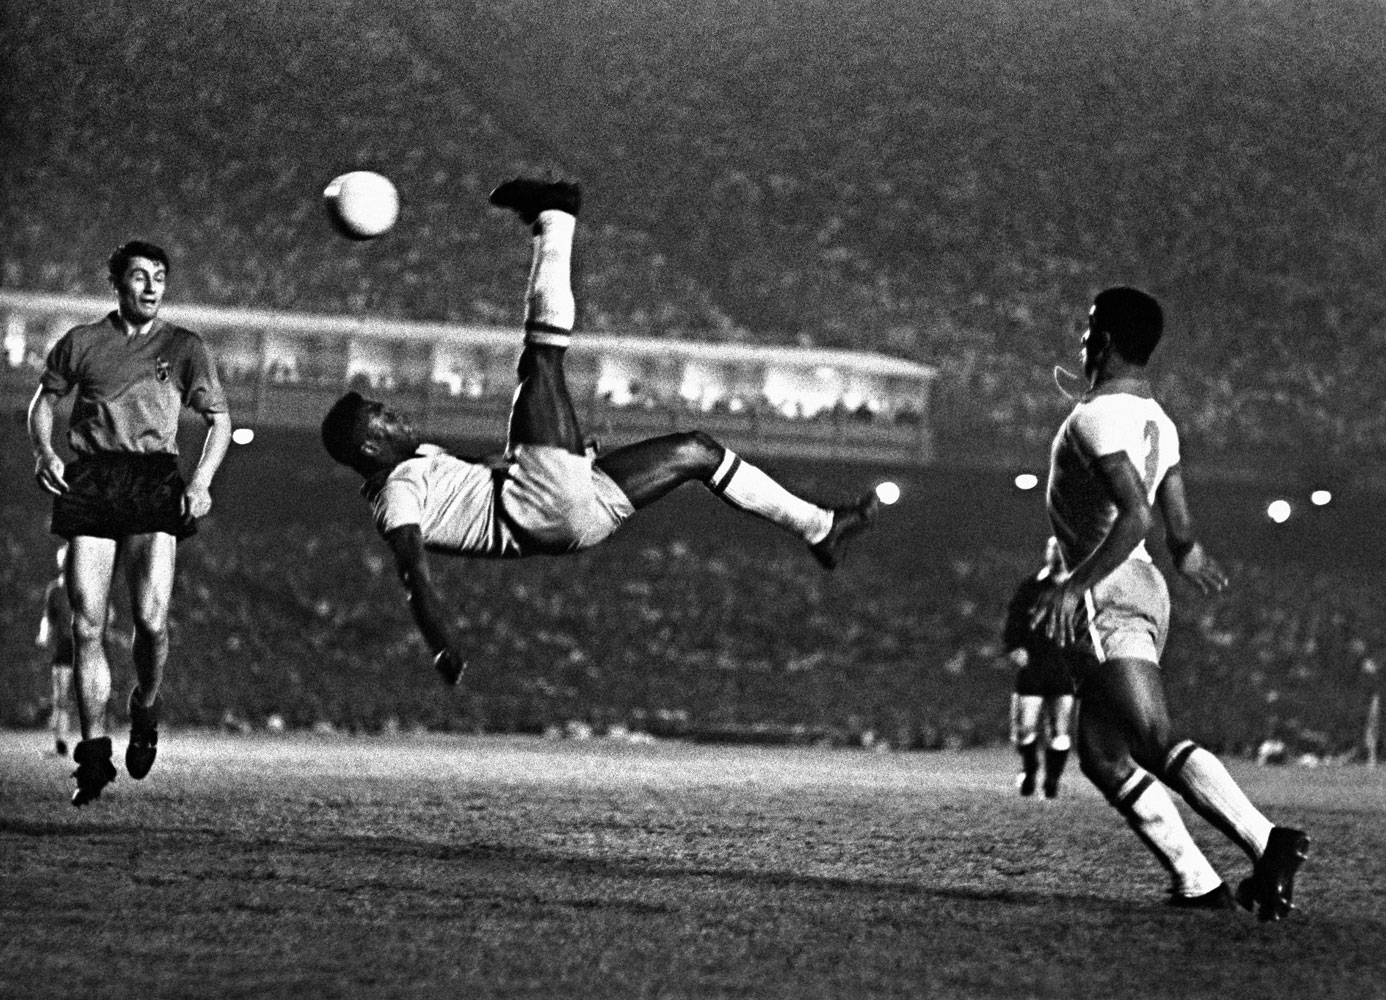 Bicicleta do Pelé no jogo Brasil e Bélgica Maracanã, 1965 100x74-The-great-kick-in-the-skyMN